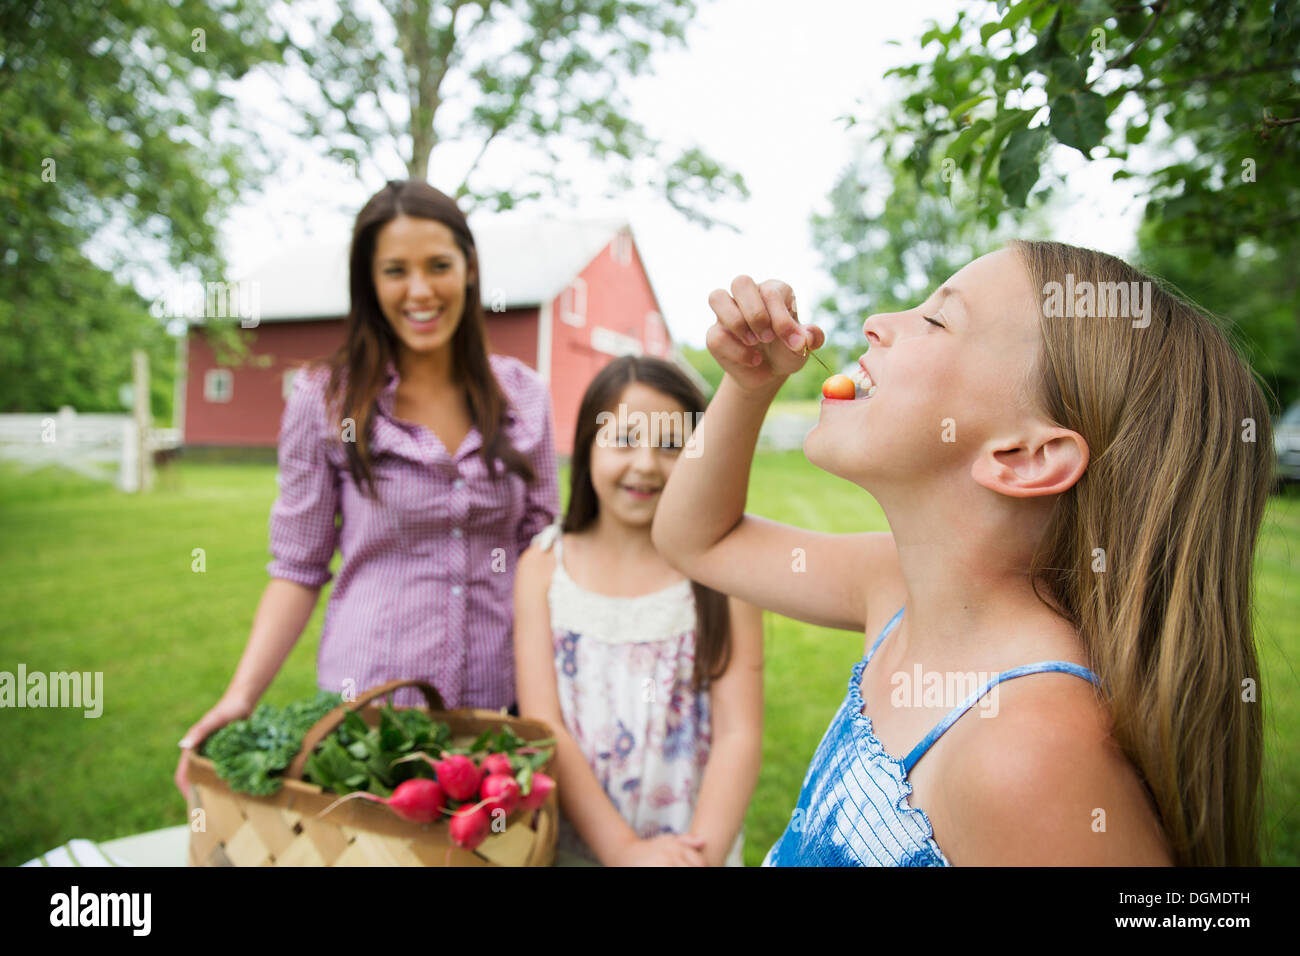 Family party. Two young girls standing by a table, one eating a fresh ripe cherry. A young woman carrying a bowl Stock Photo